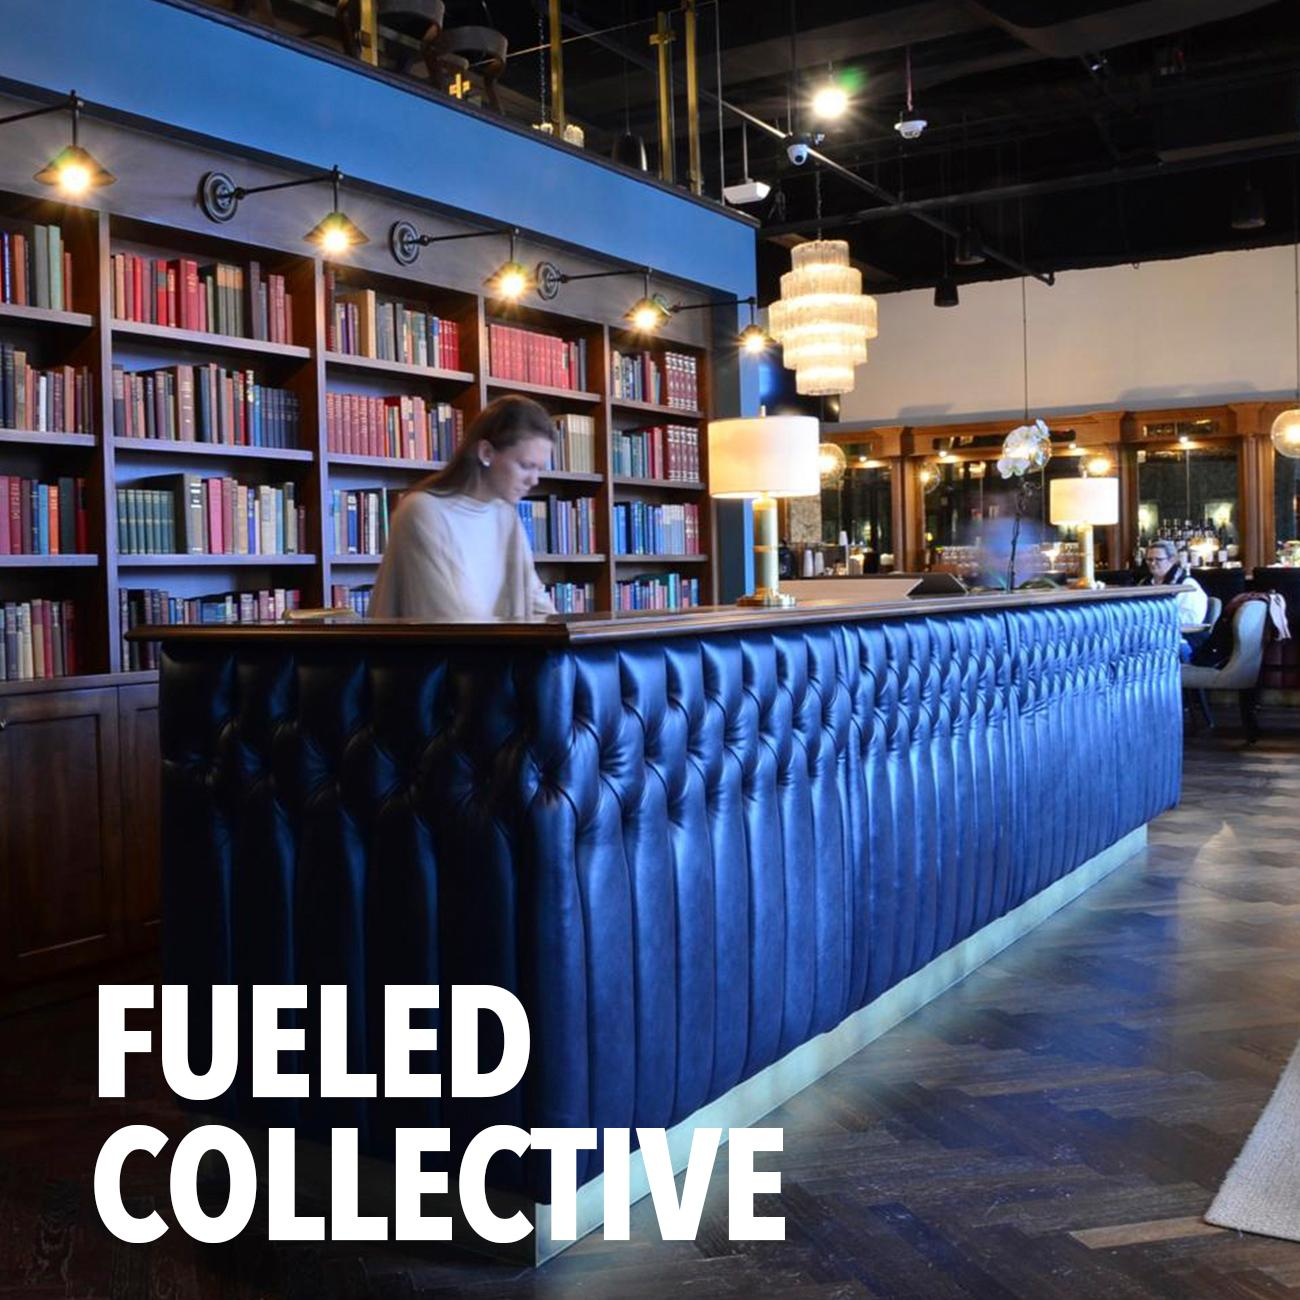 PLACE: Fueled Collective Cincinnati in Norwood / ADDRESS: 3825 Edwards Road (45209) / TIME: 7:30 PM to 11:30 PM / Image: Leah Zipperstein // Published: 11.6.18